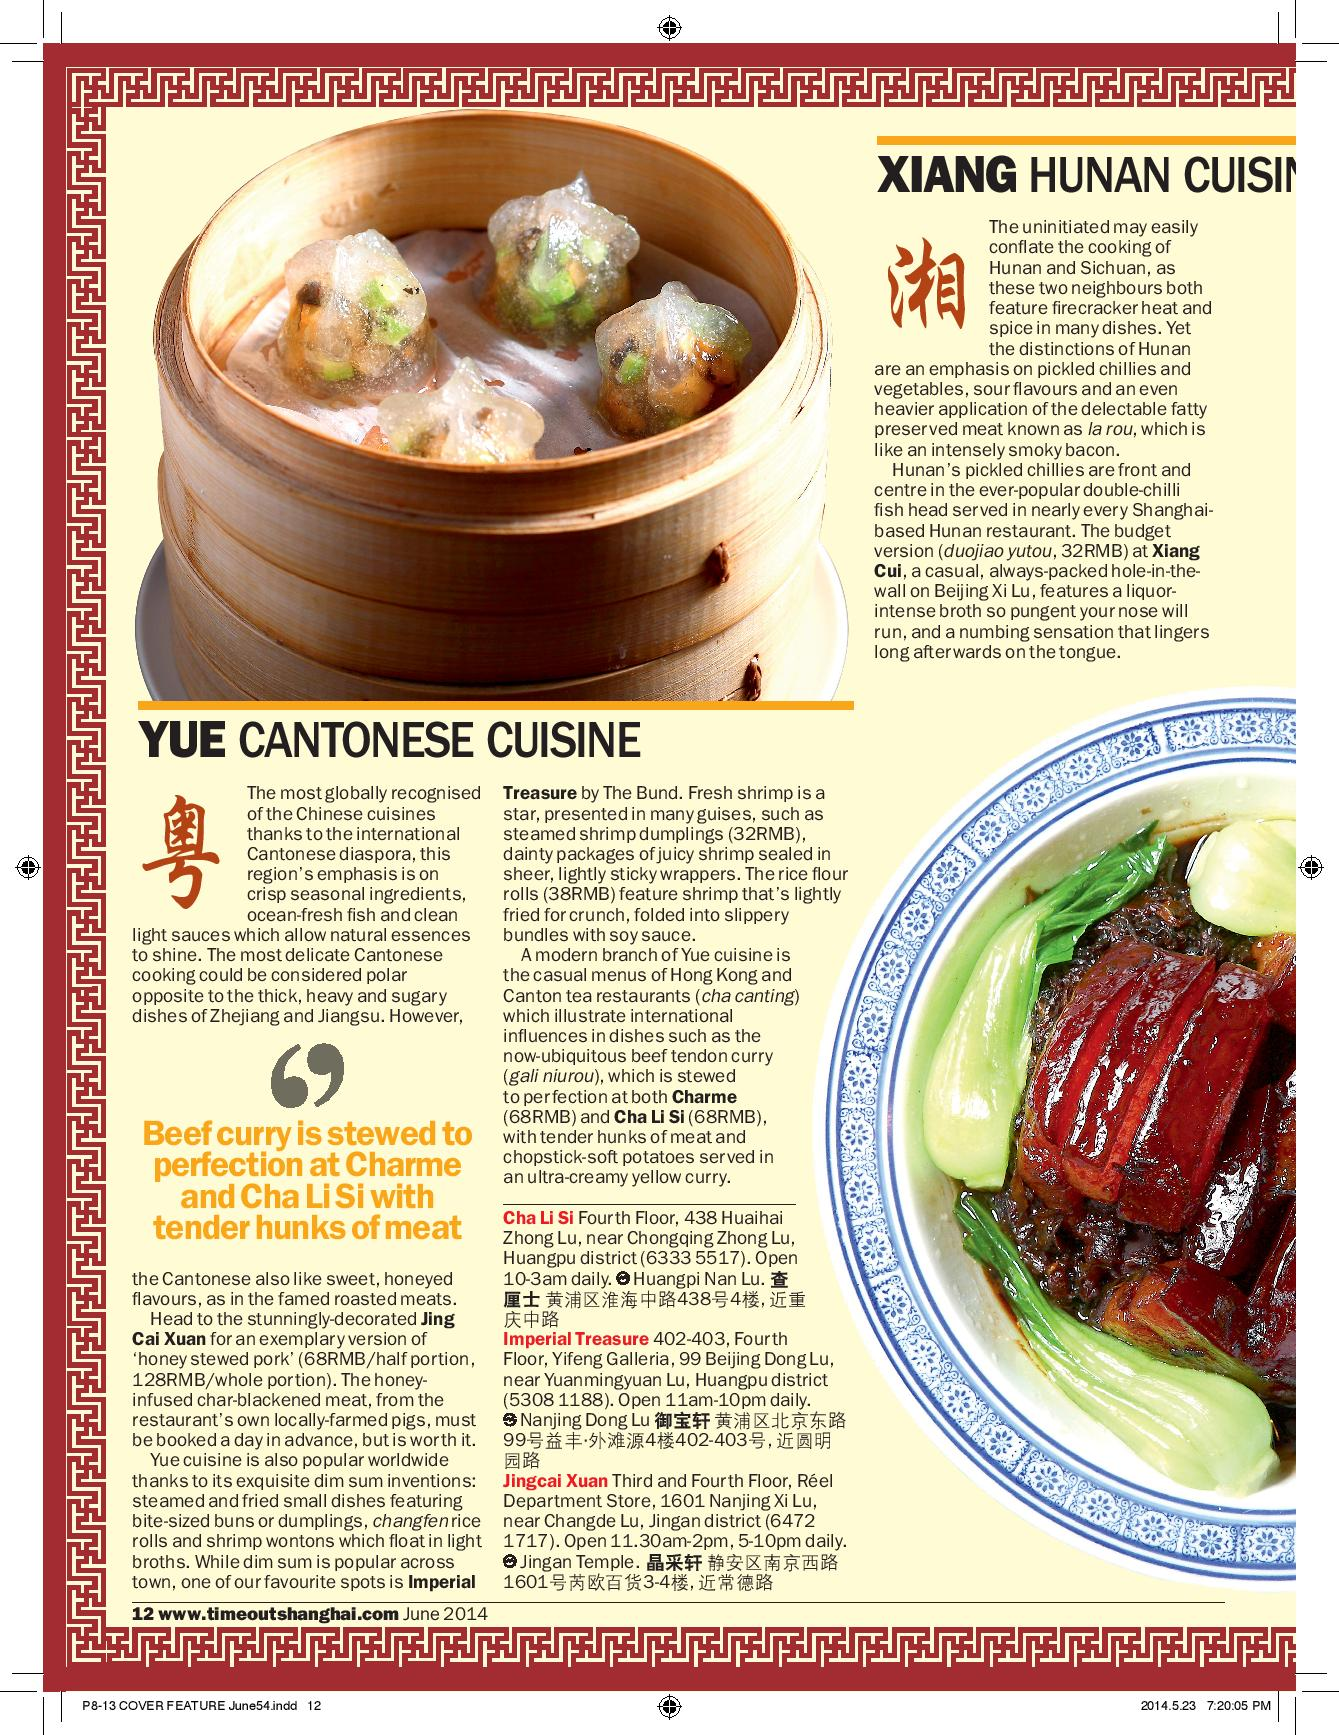 P8-13 COVER FEATURE Eight Great Cuisines June 2014-page-005.jpg